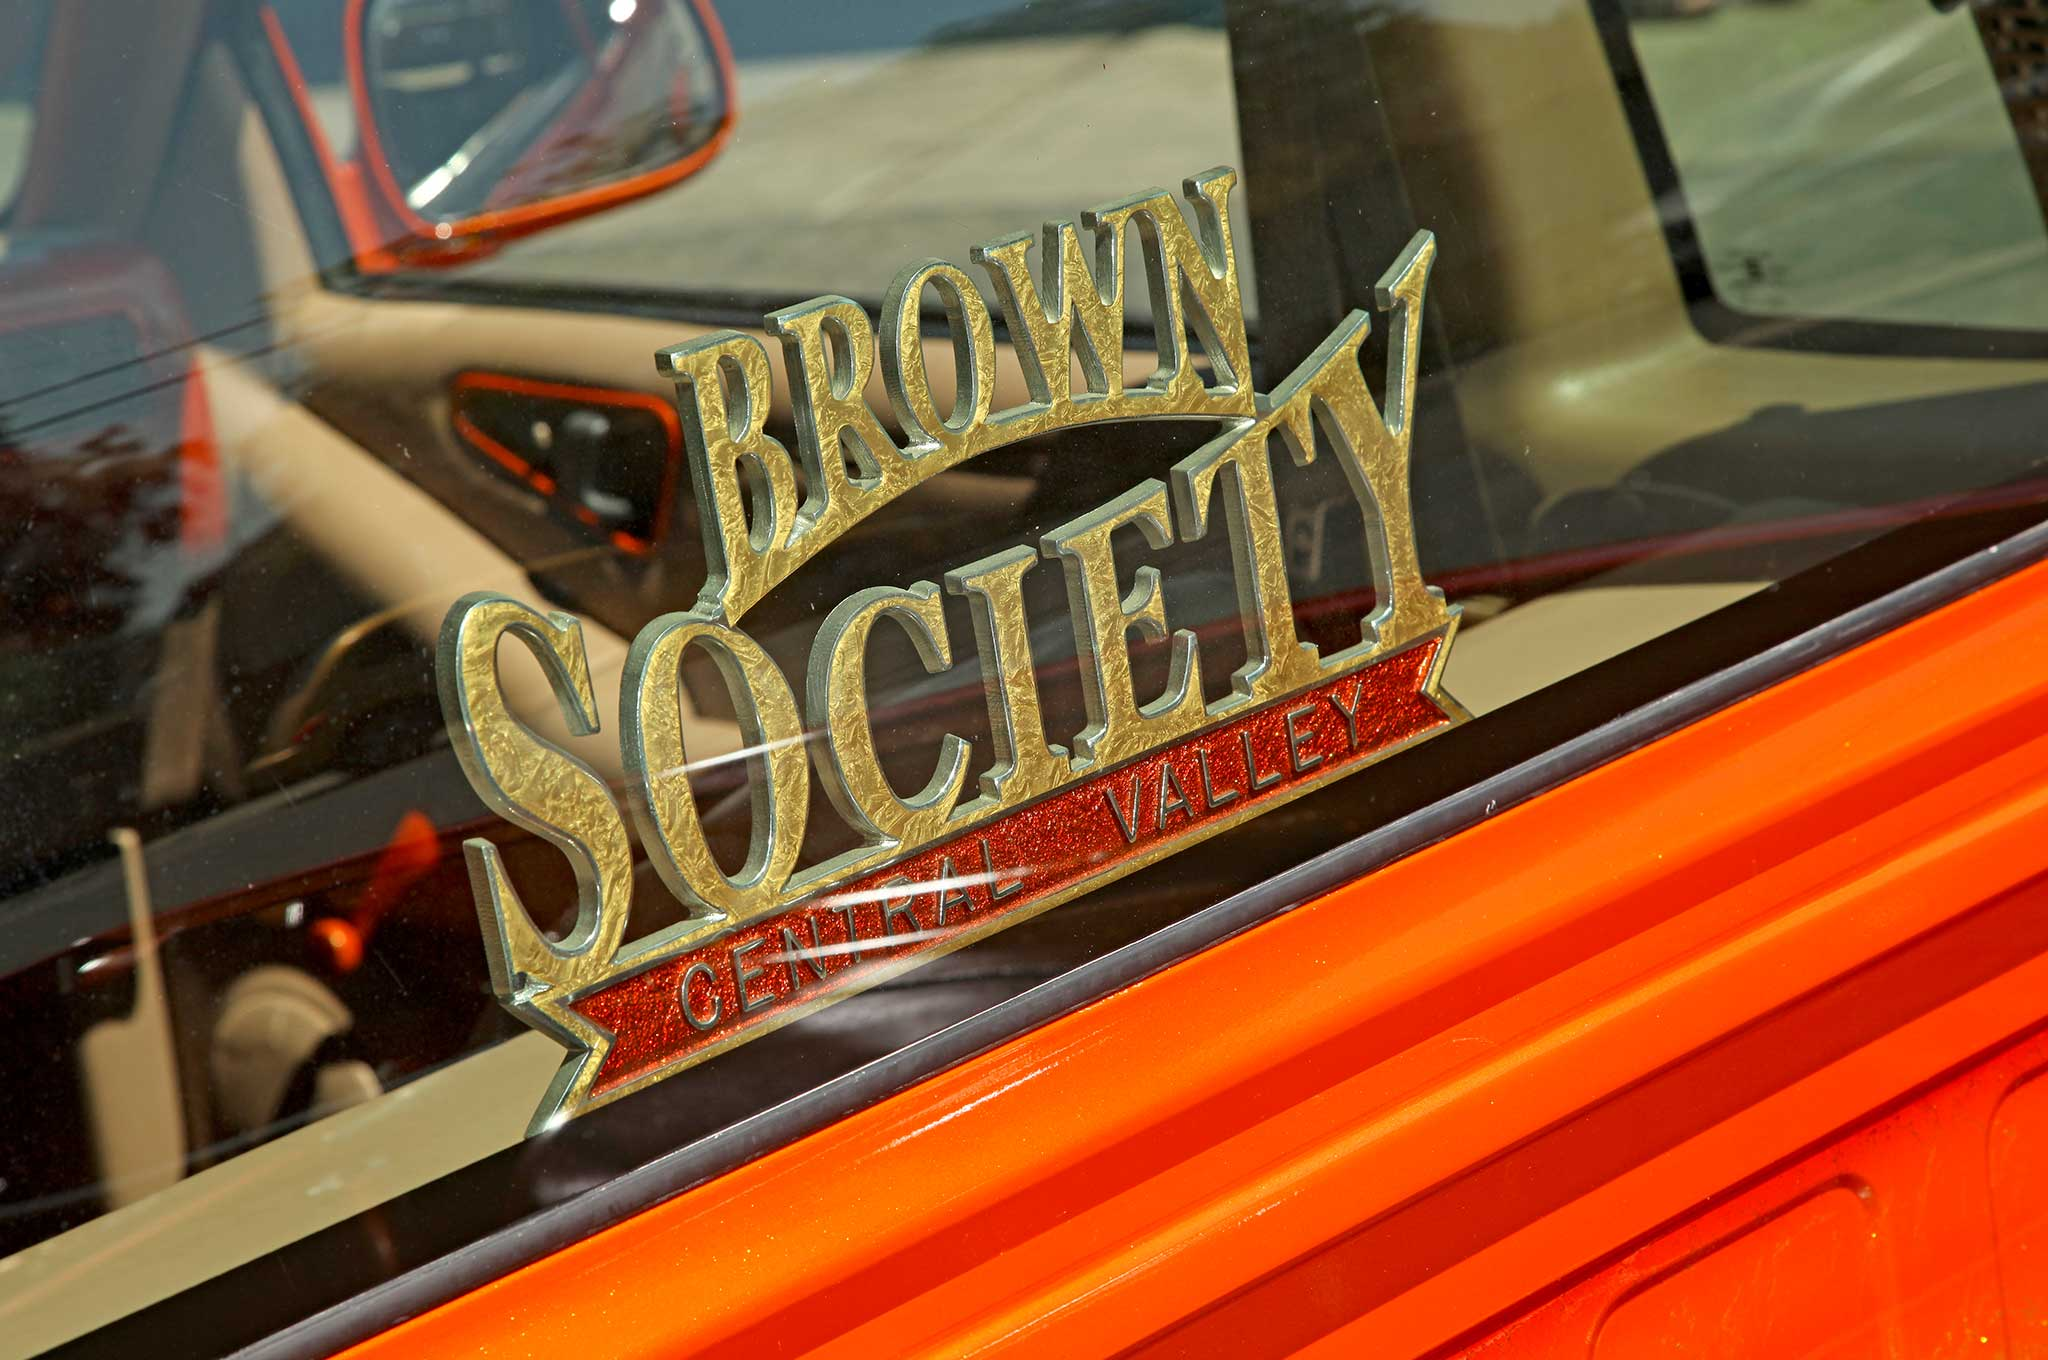 011 1996 chevy s10 brown society club plaque